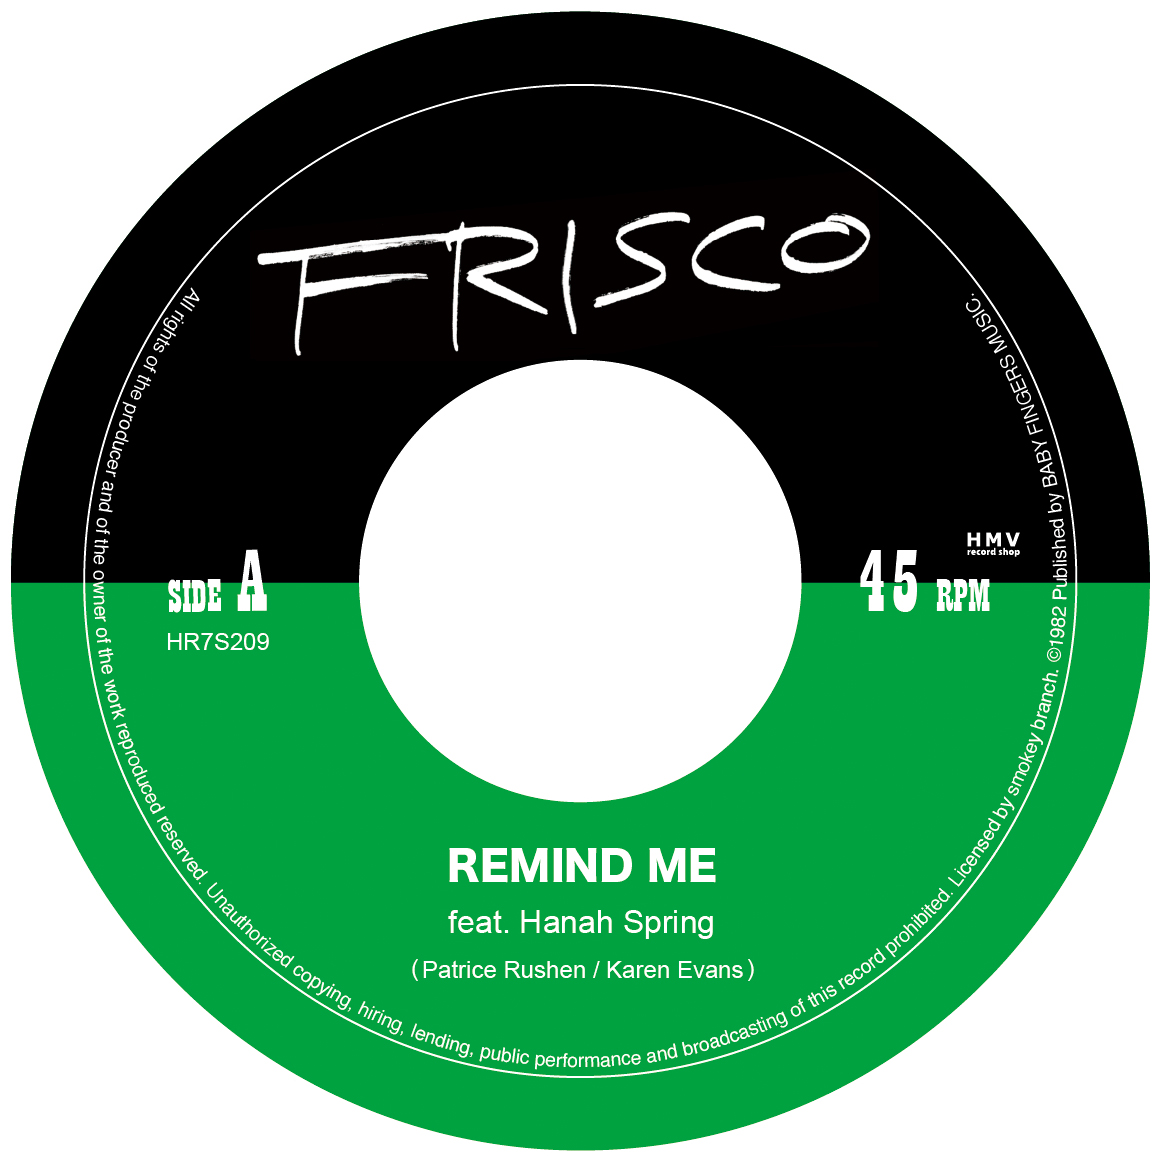 REMIND ME feat. Hanah Spring HR7S209